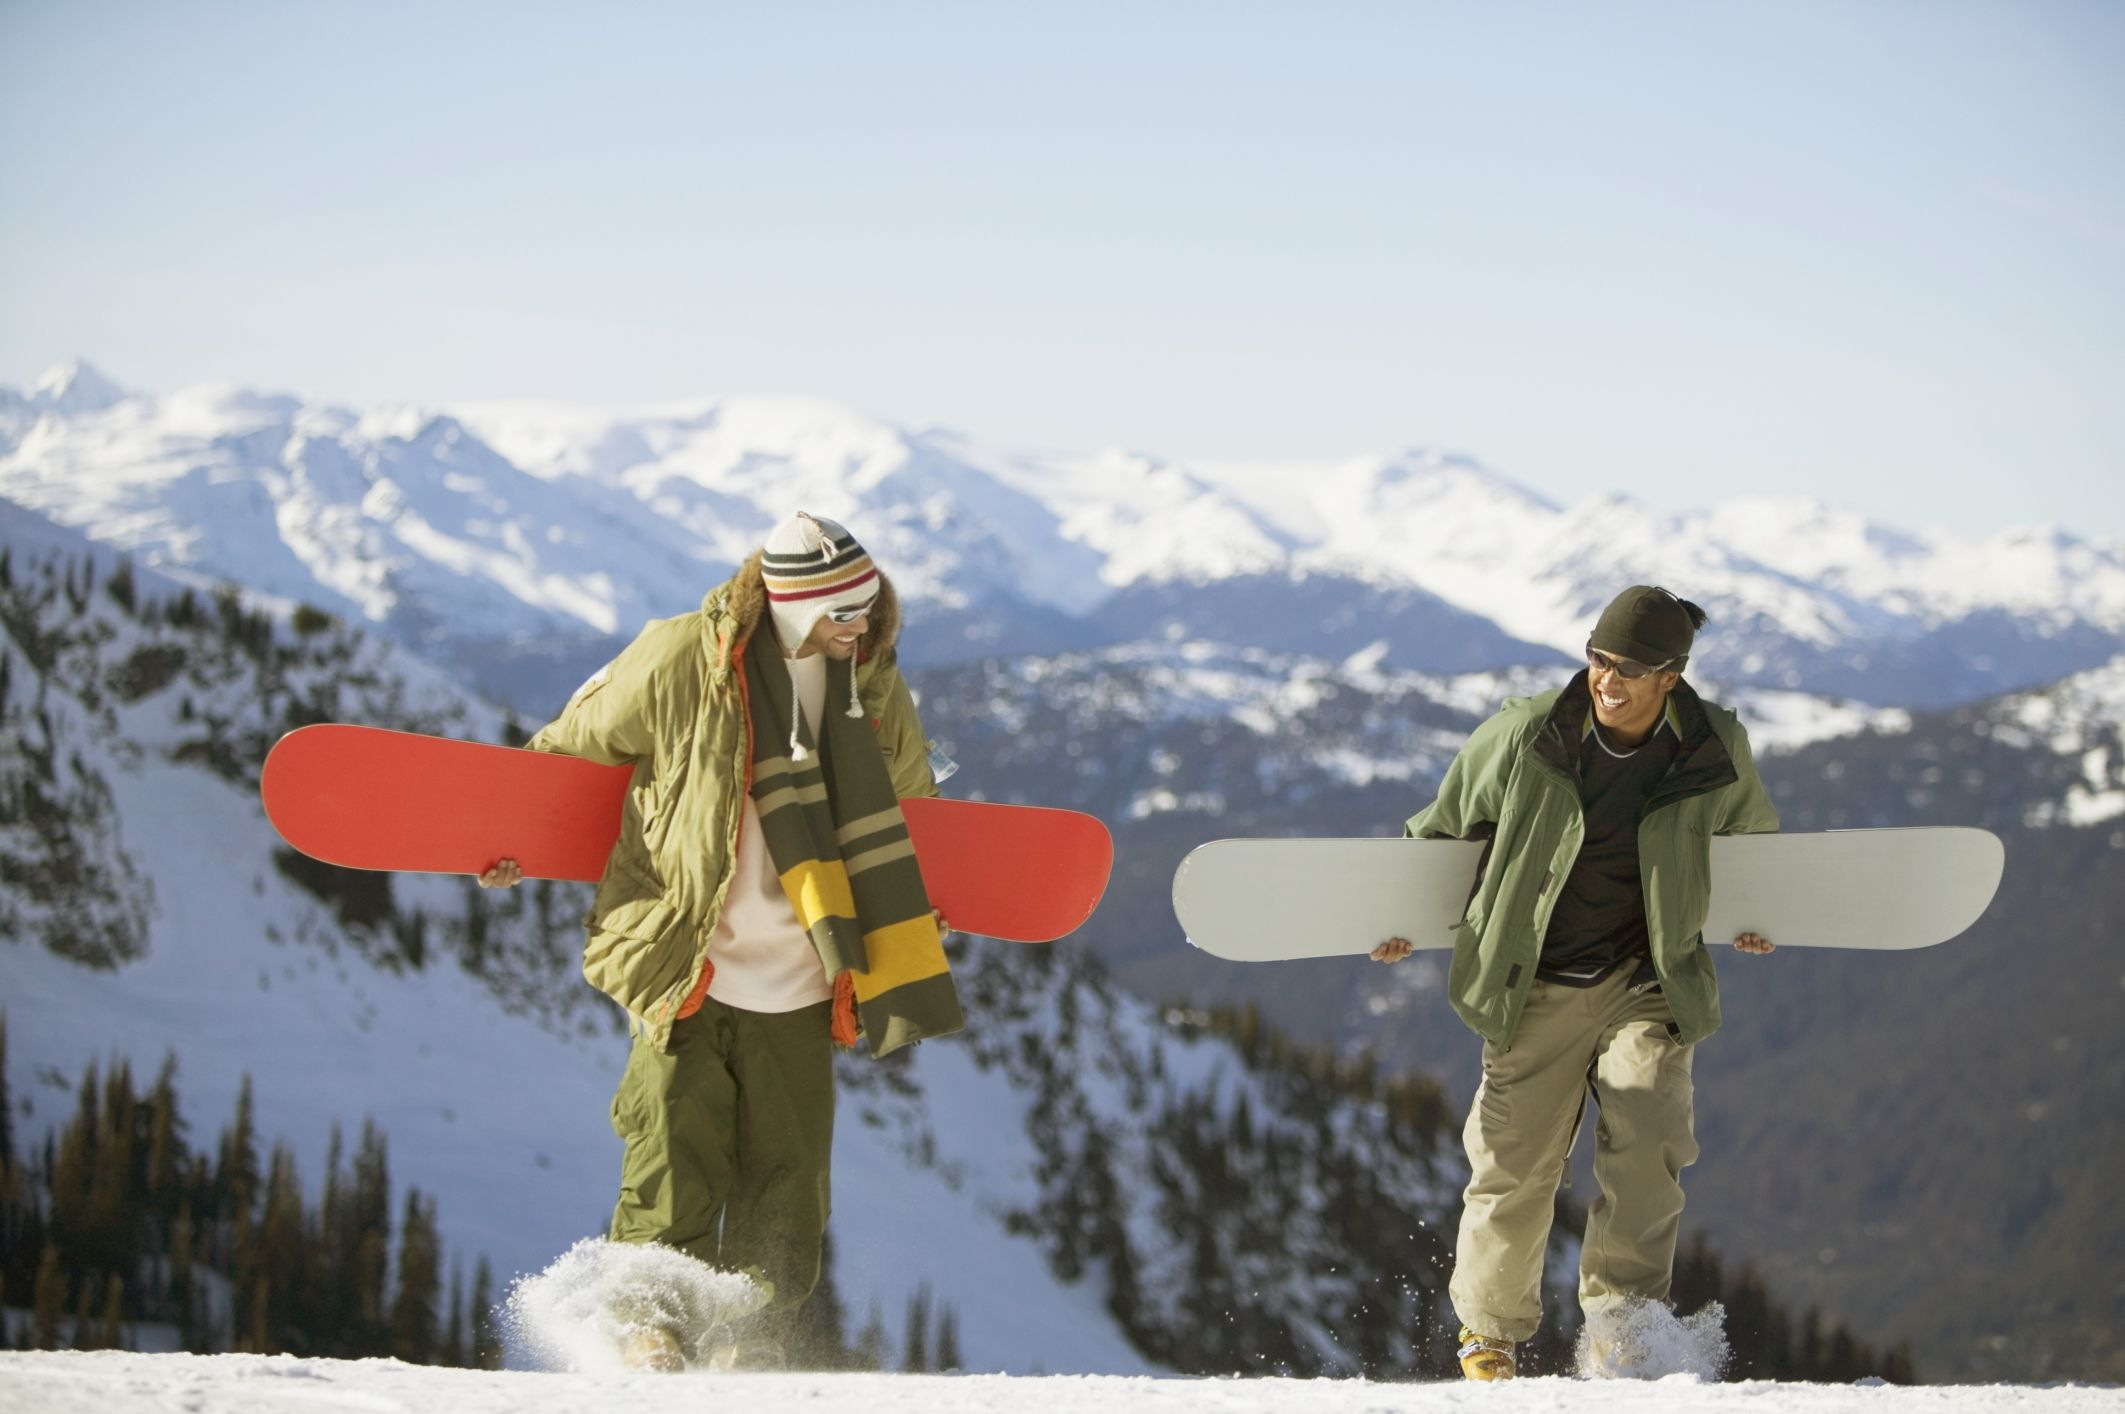 2 snowboarders carrying their boards